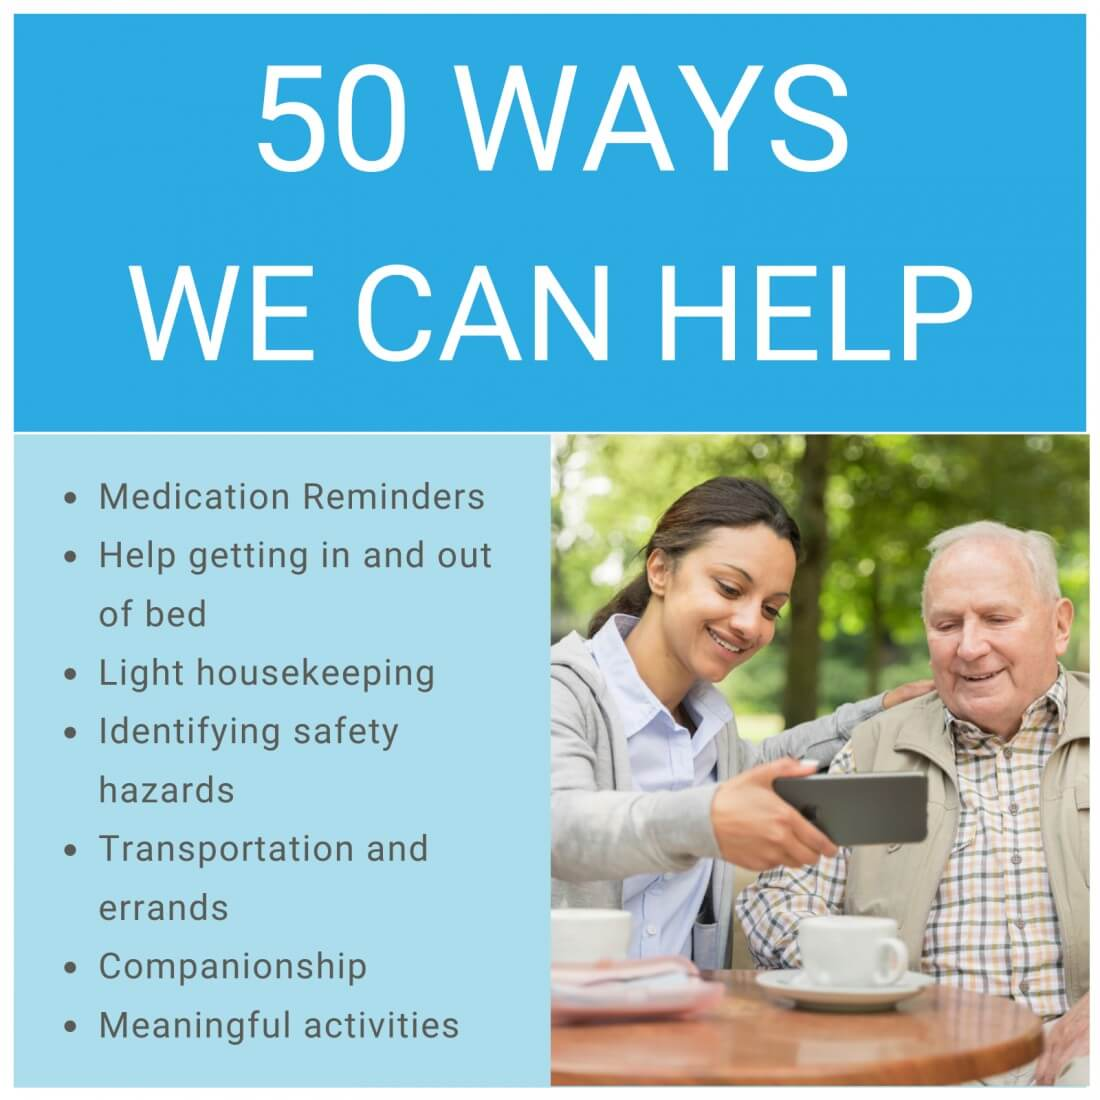 50 ways comforcare can help your loved one